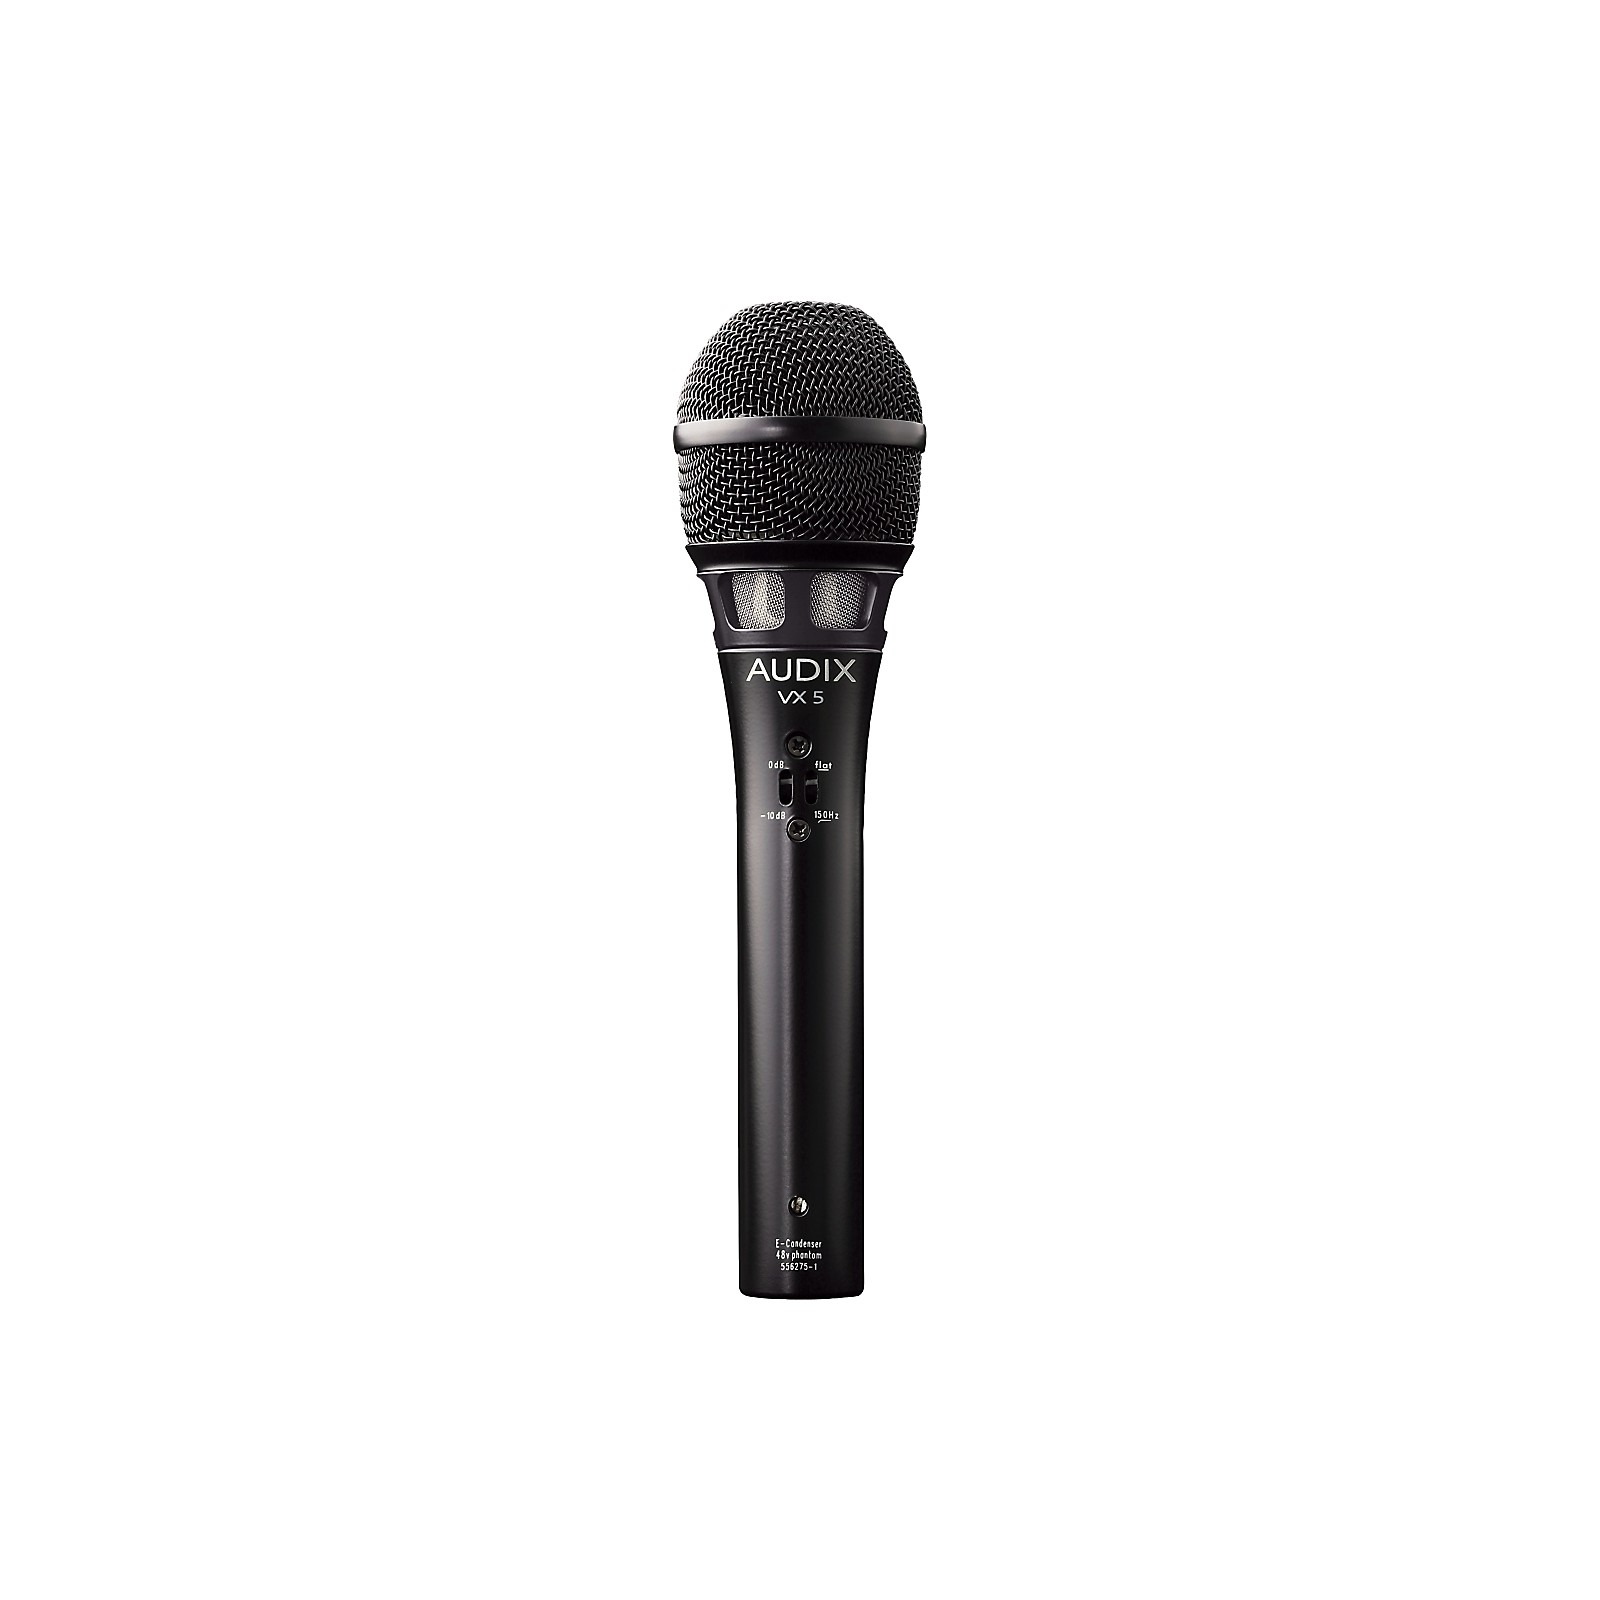 Open Box Audix VX5 Handheld Supercardioid Condenser Microphone